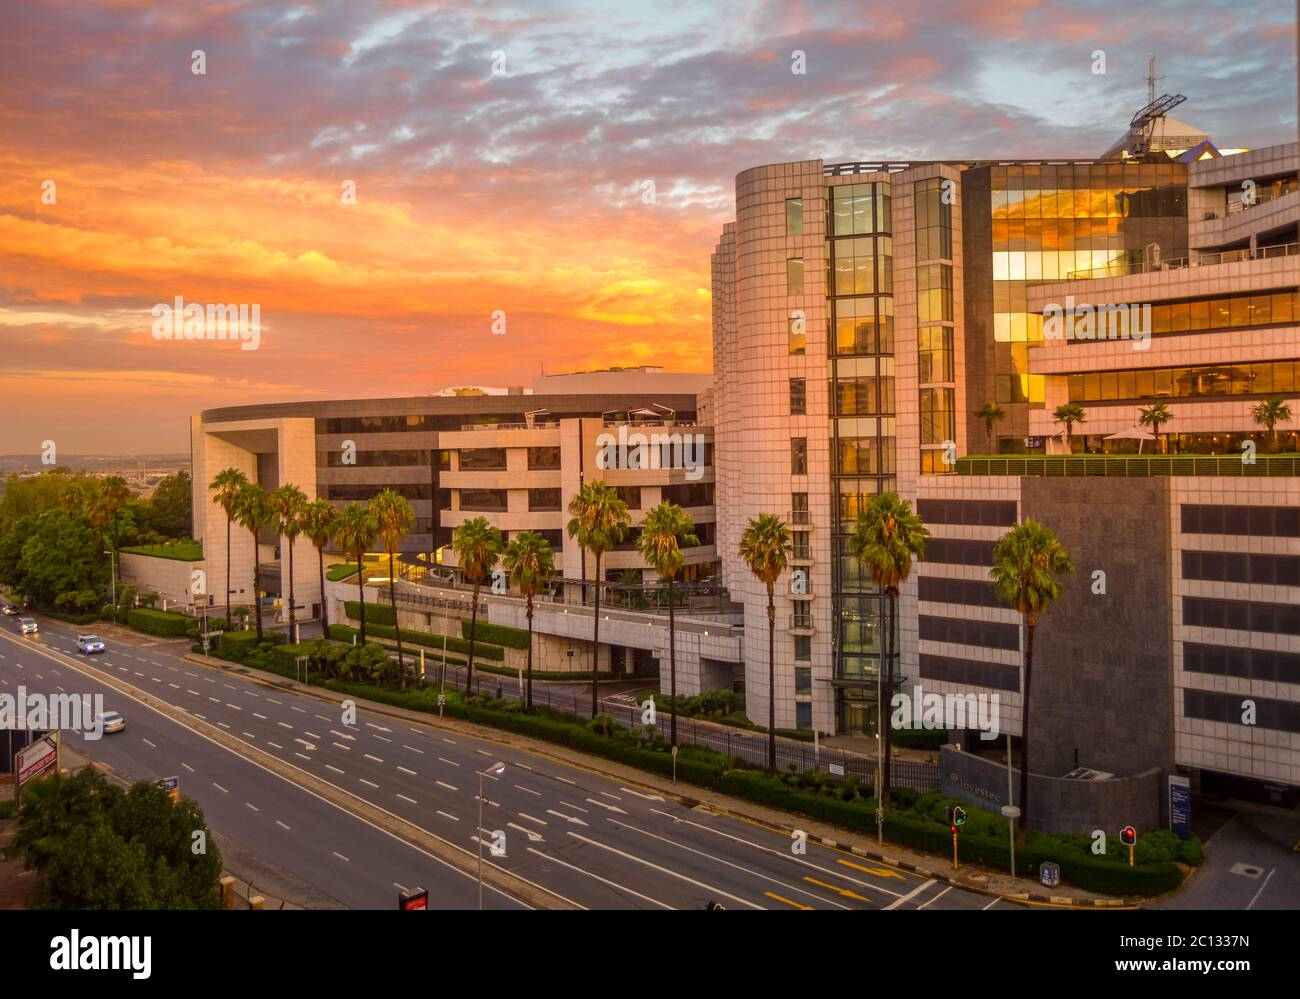 Corporate and financial offices in Sandton Johannesburg South Africa at sunset sky Stock Photo